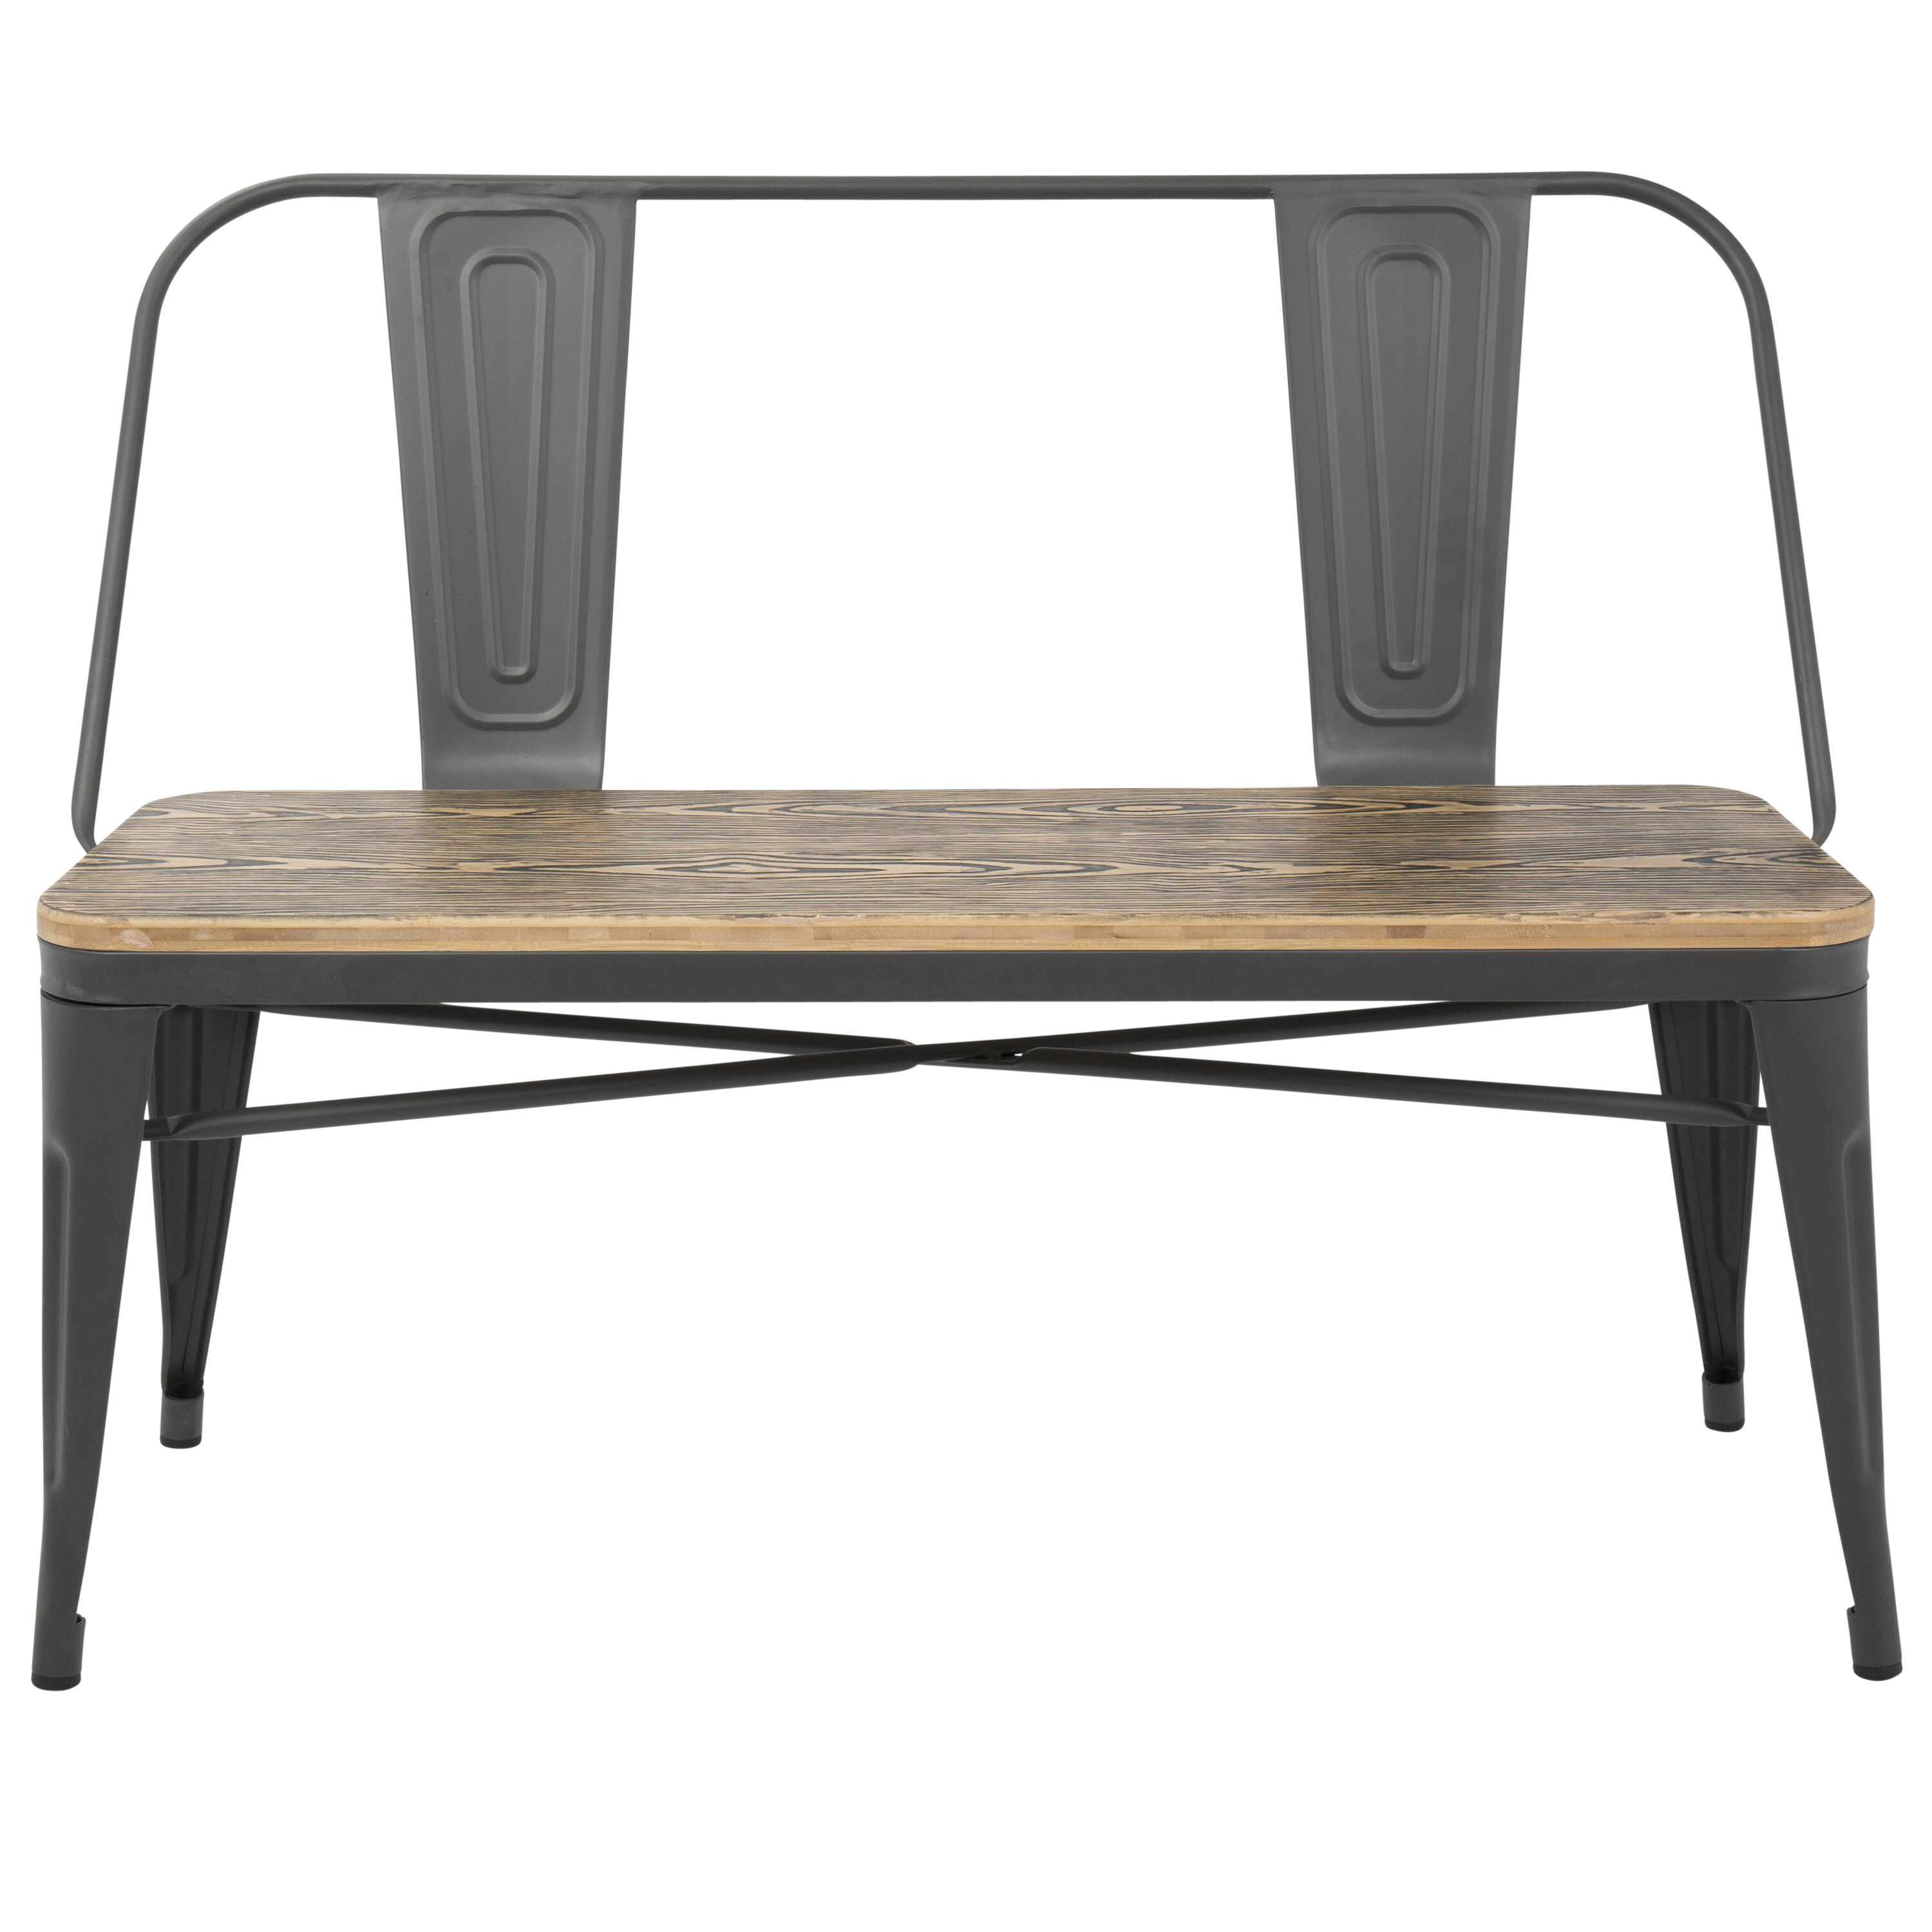 Awesome Claremont Dining Bench Andrewgaddart Wooden Chair Designs For Living Room Andrewgaddartcom